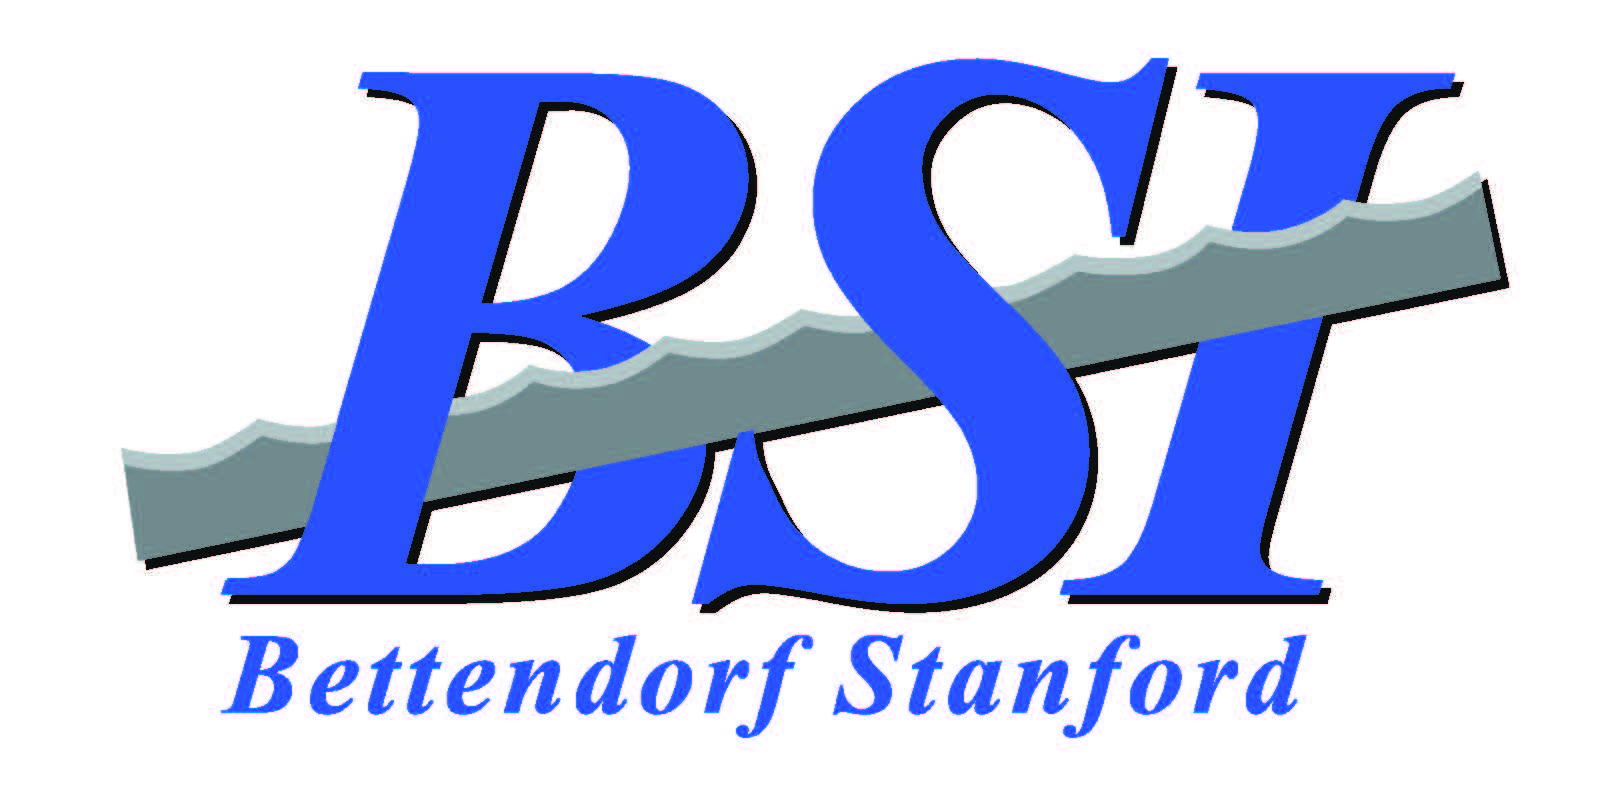 bettendorf_logo_bsd_2021